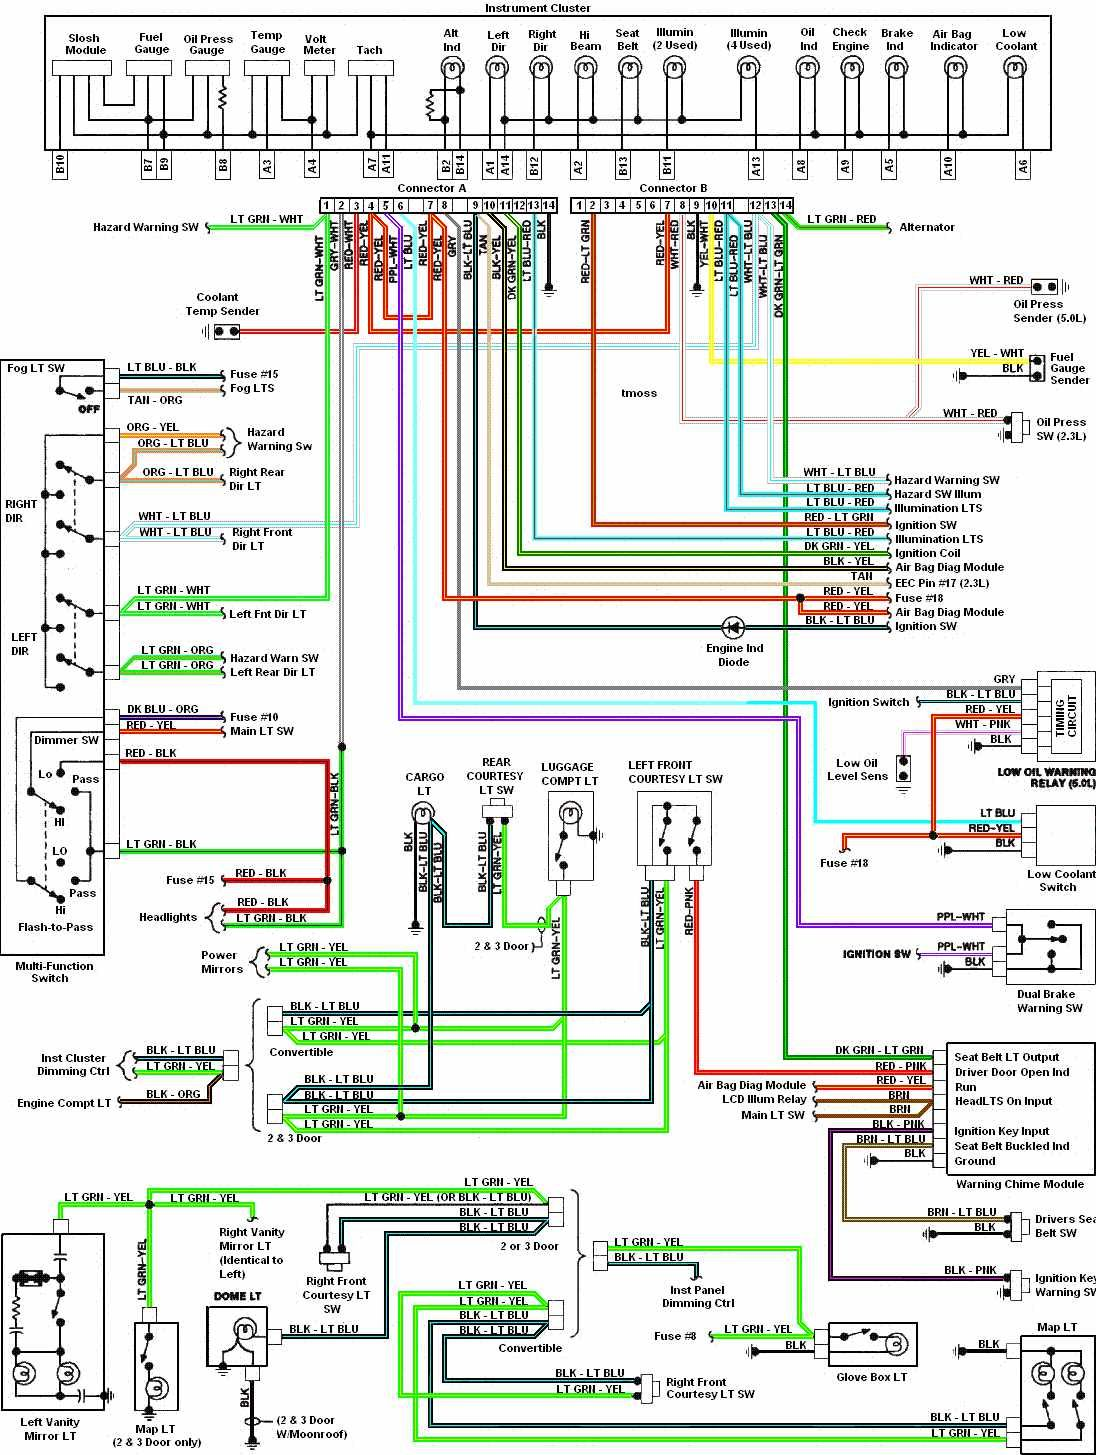 Ford 50 Engine Diagram Worksheet And Wiring 2000 F250 90 Mustang Dash Schematics Rh Sylviaexpress Com Explorer Taurus 30